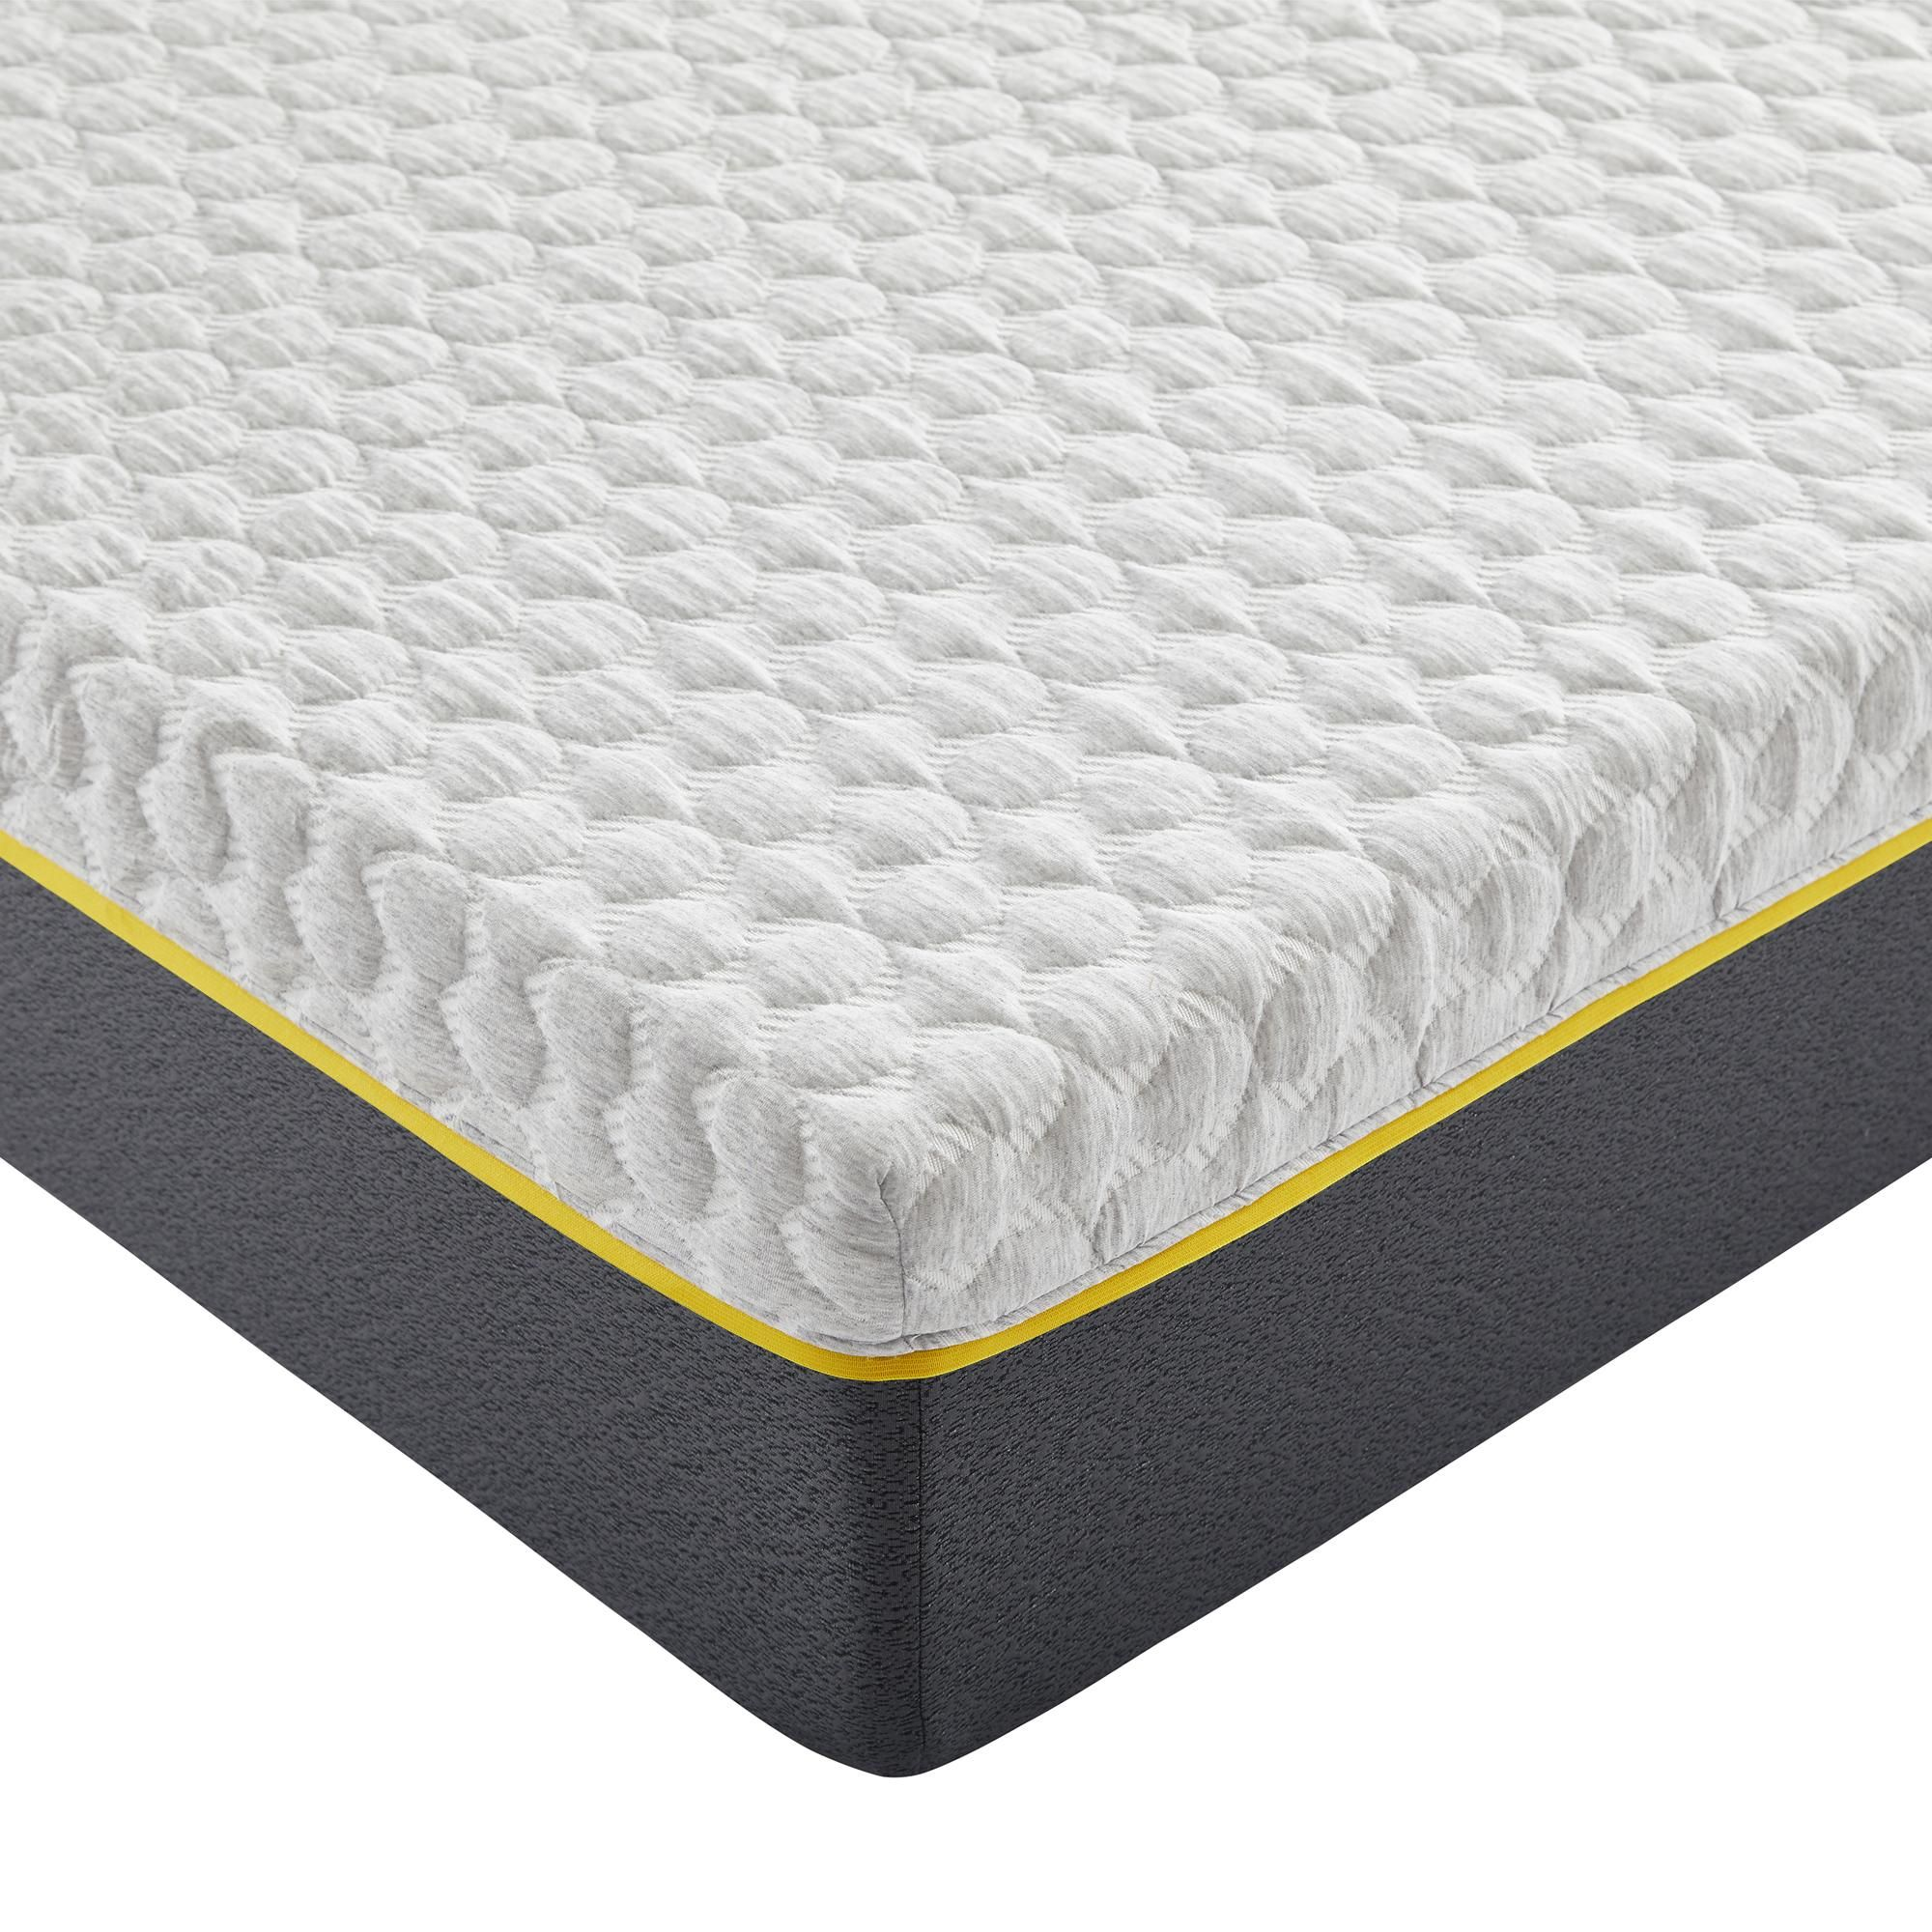 Corsicana 10 Inch Hybrid Full Size Mattress Early Bird King Size Mattress Mattress California King Mattress